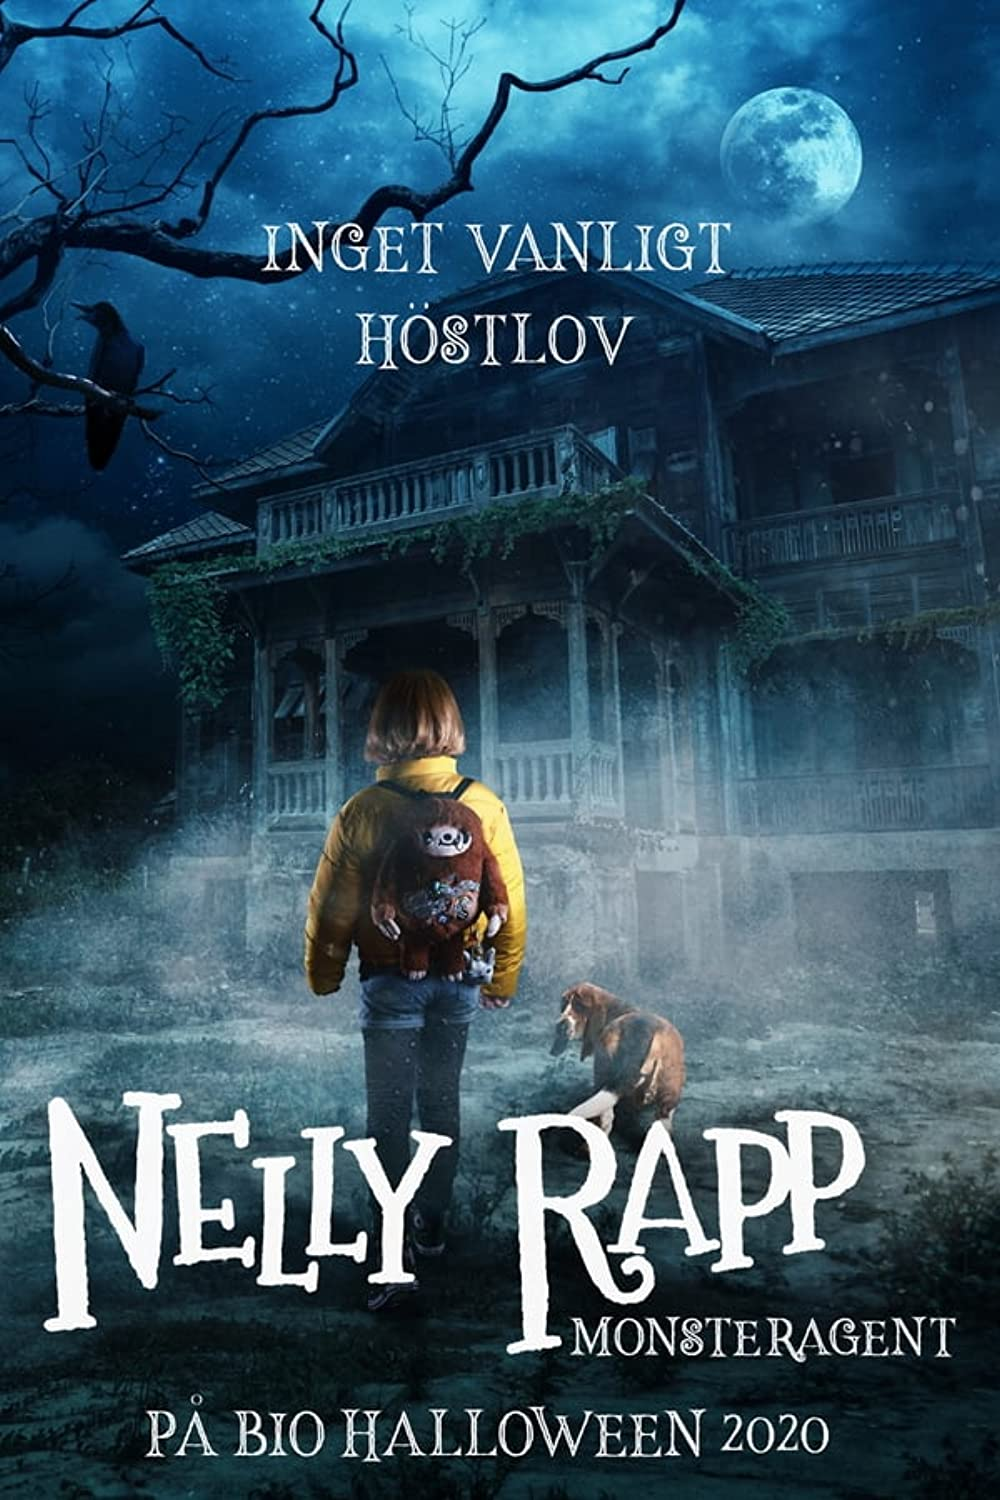 Nelly Rapp: Monster Agent